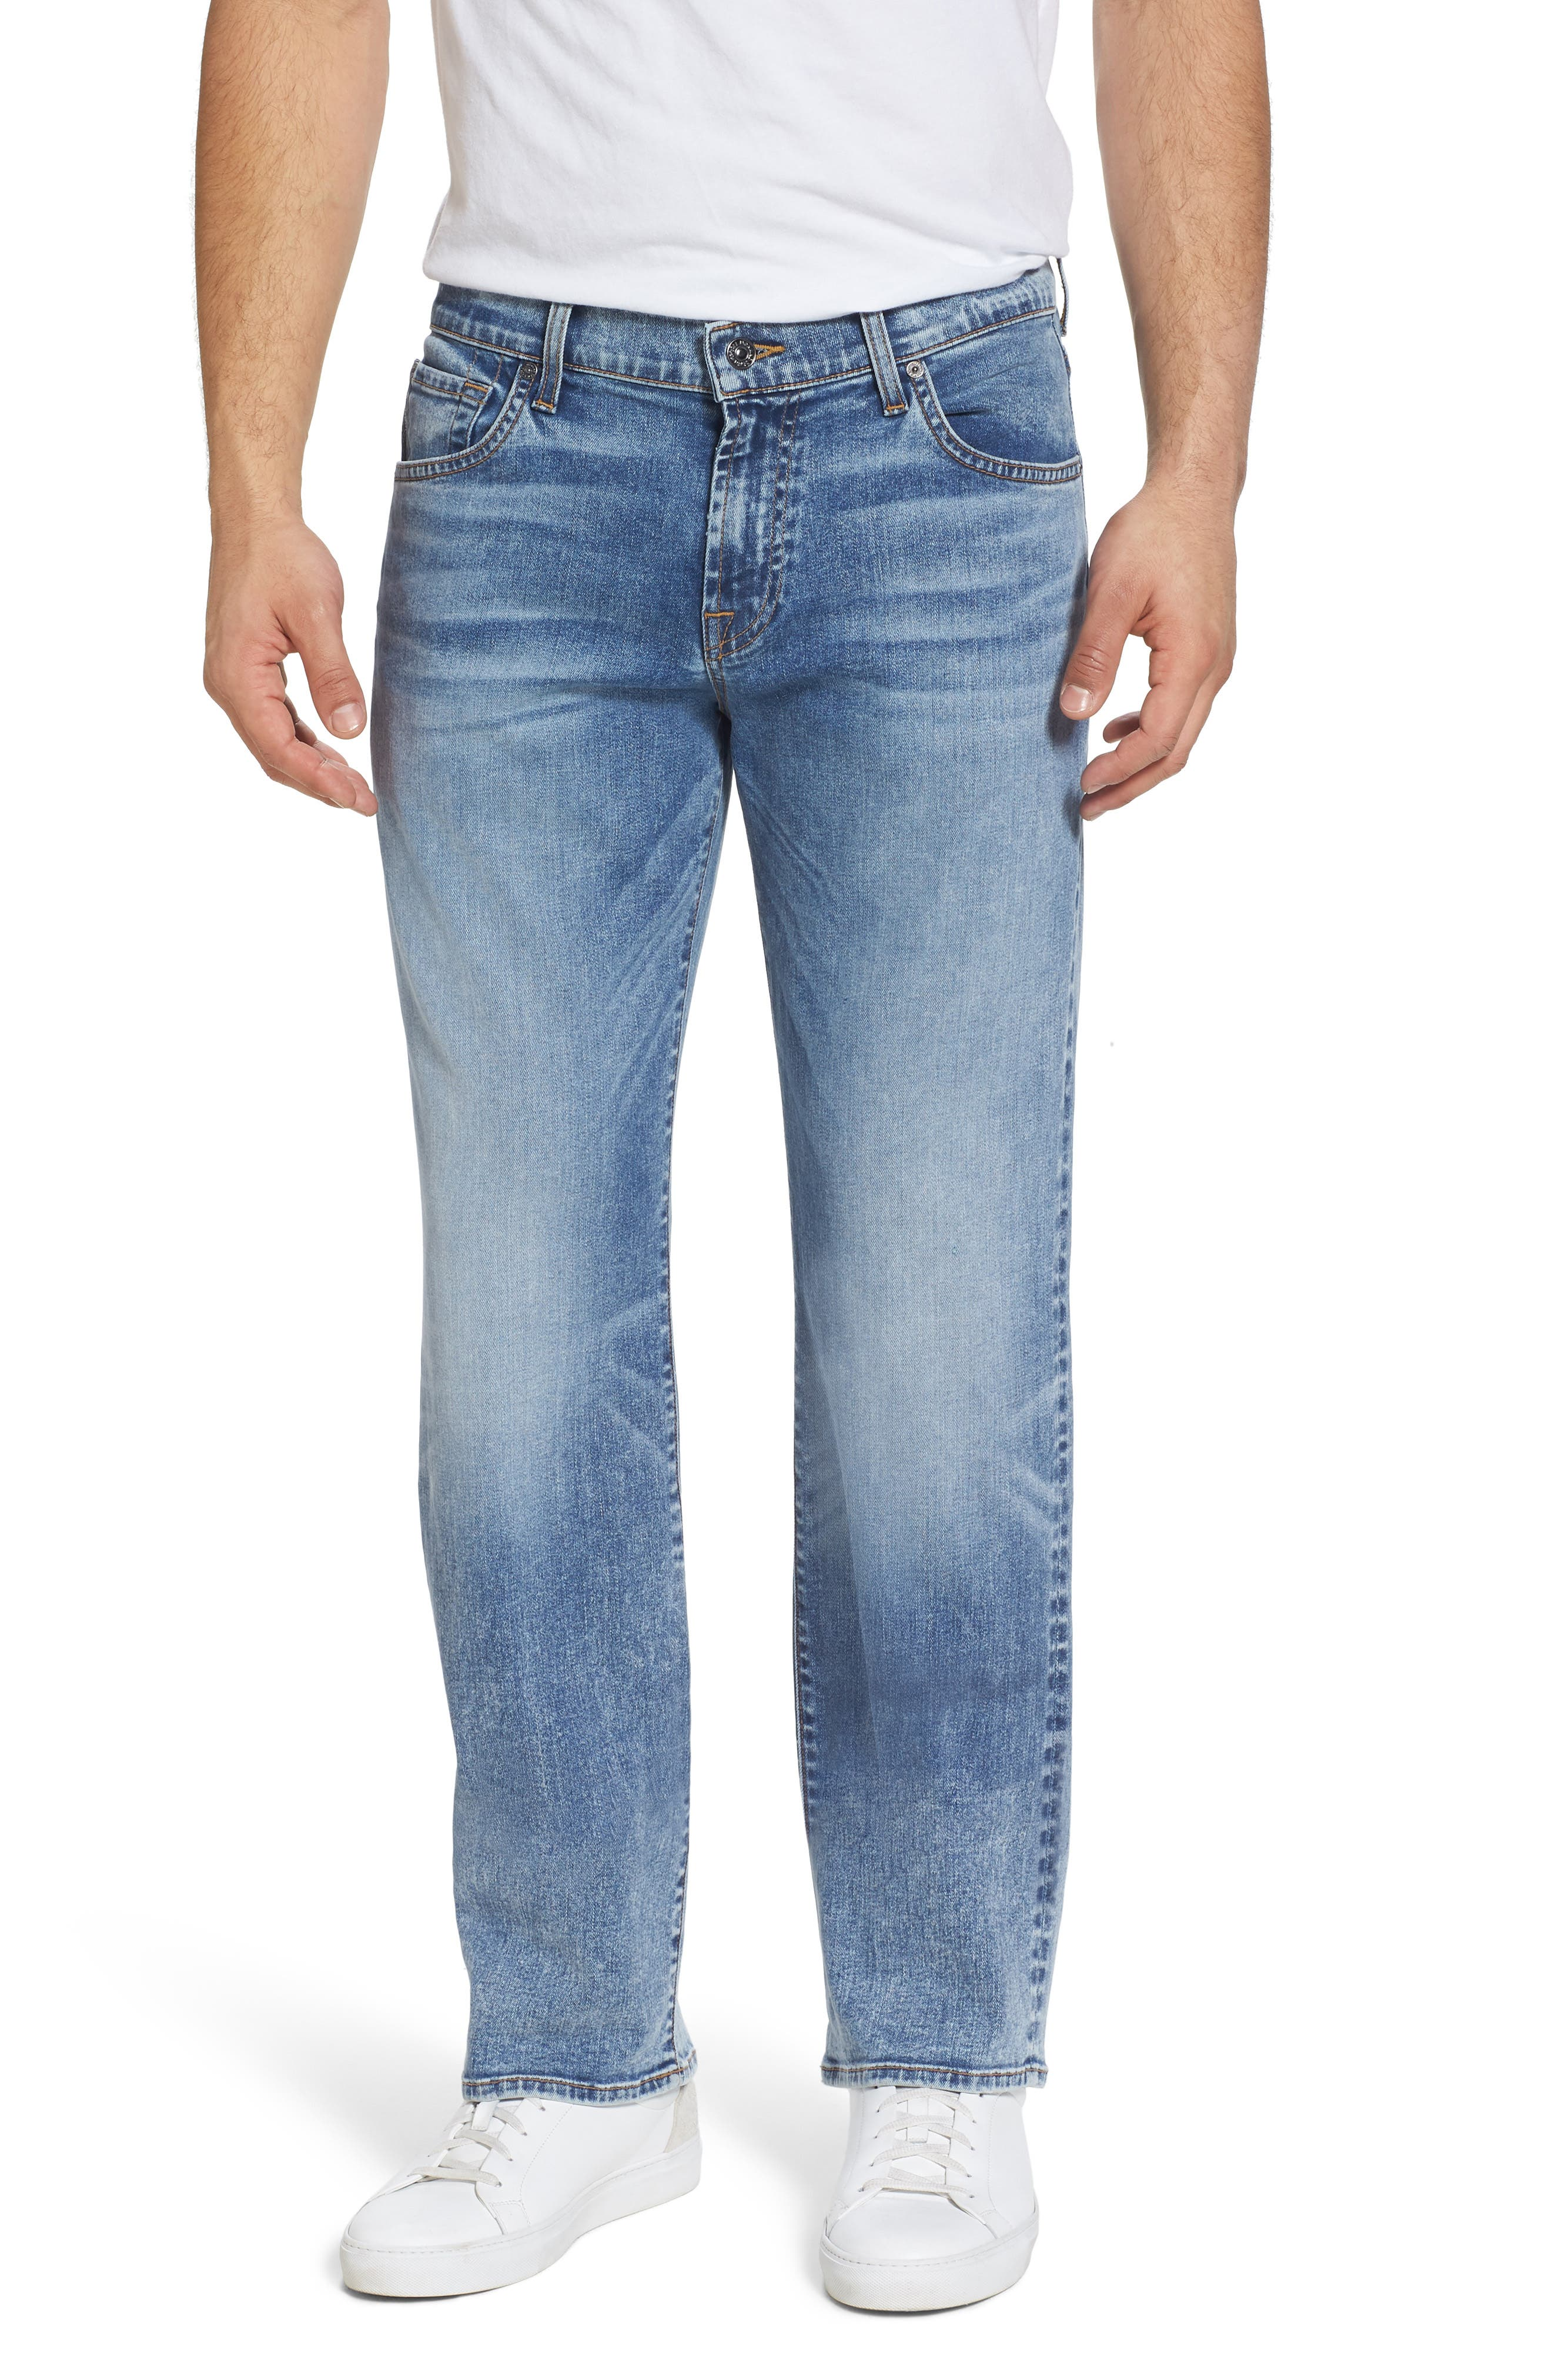 Austyn - Luxe Performance Relaxed Fit Jeans,                             Main thumbnail 1, color,                             Death Valley